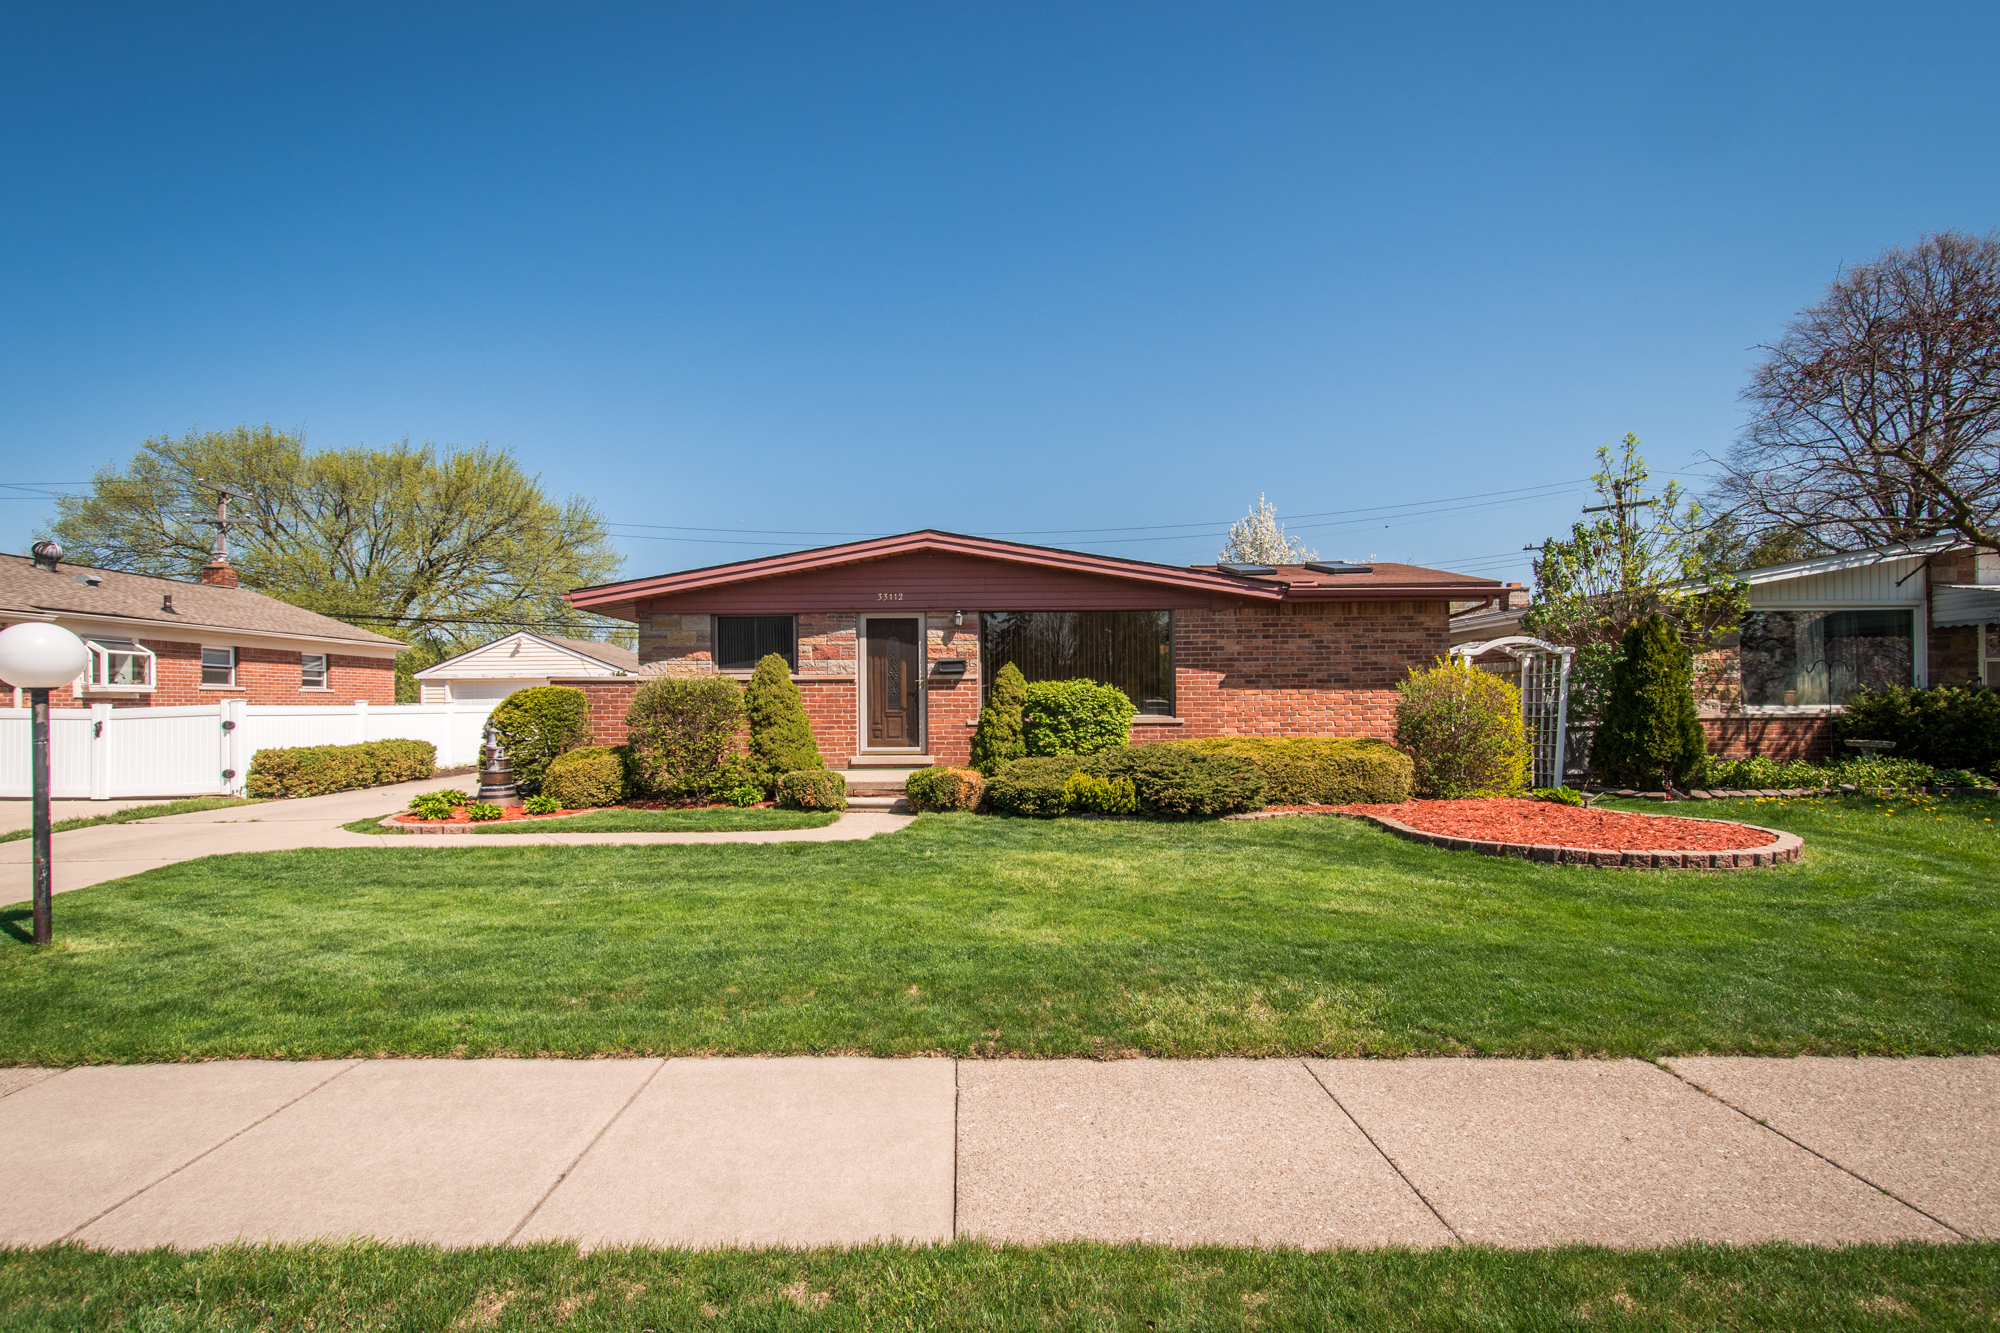 Hiveley- Westland-$137,000   DOM (Days on Market) 0/ Sold for $2,000 over asking price.   This home was in high demand and had multiple offers within minutes of hitting the market!